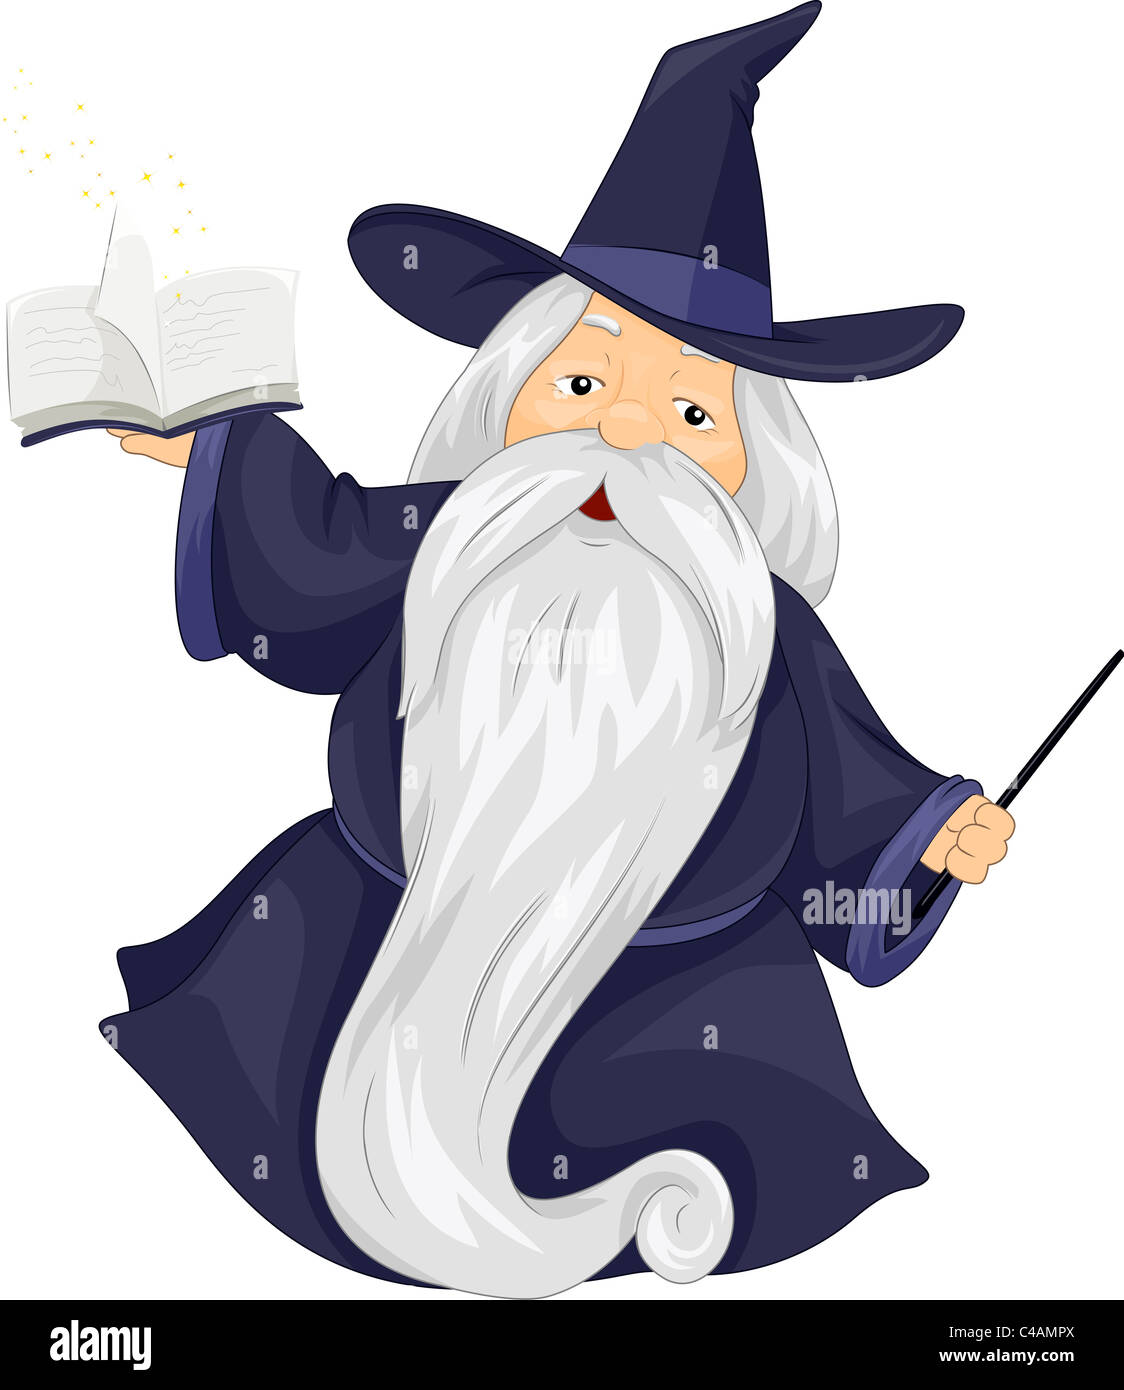 Illustration of a Fat Wizard Holding a Spell Book - Stock Image